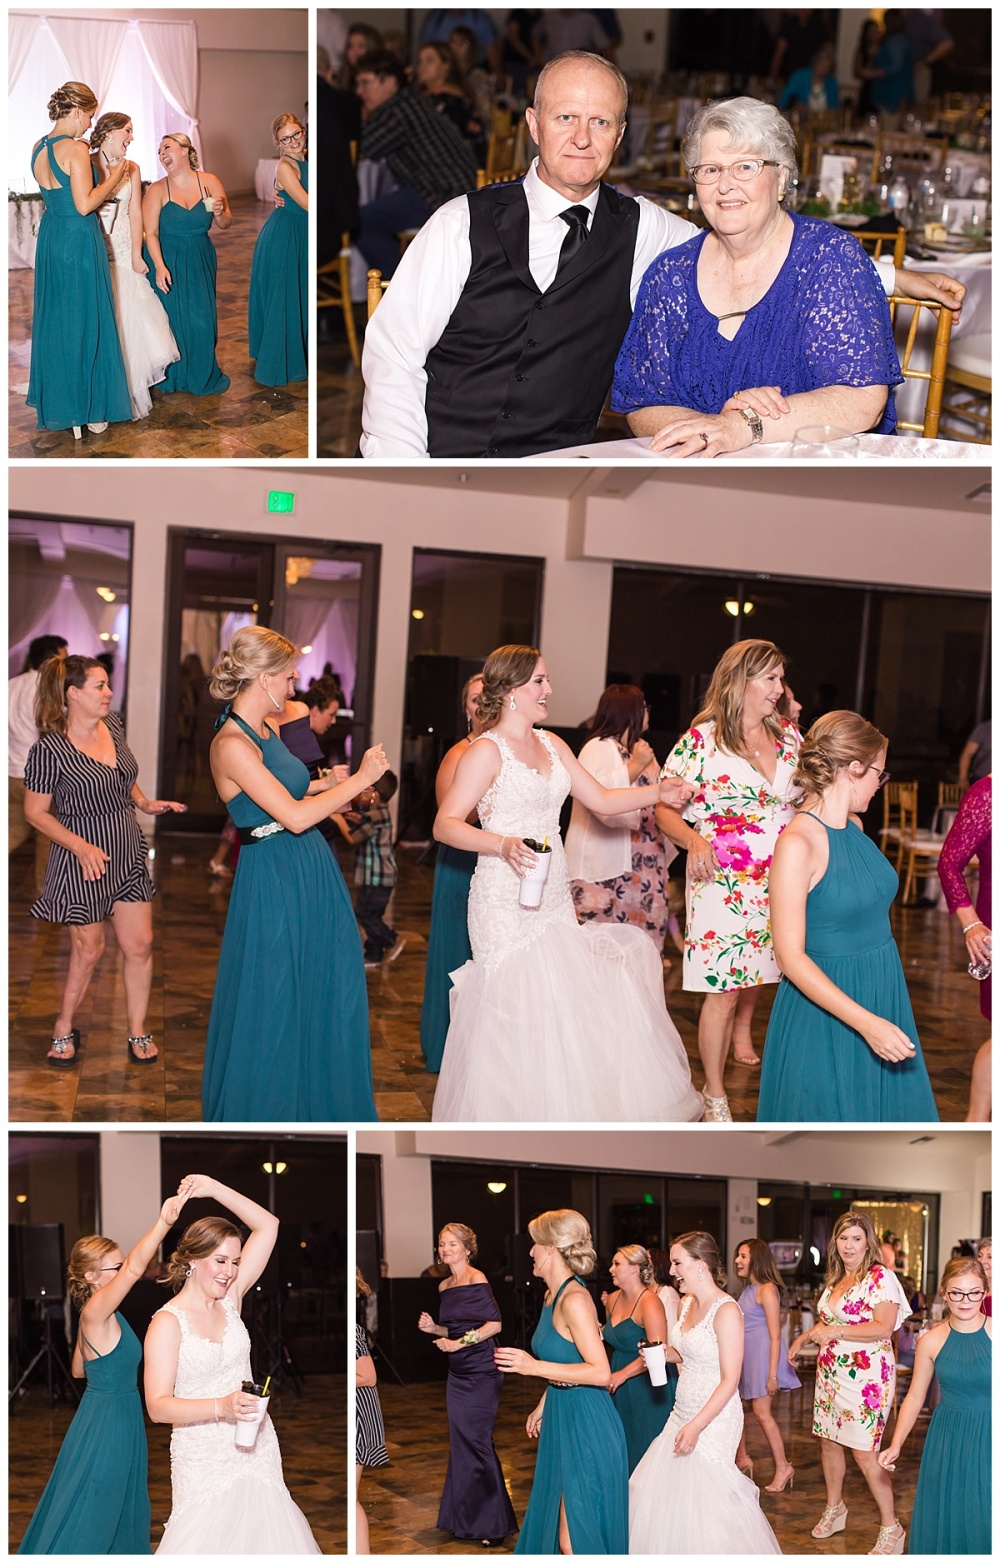 Carly-Barton-Photography-Wedding-Photos-Granberry-Hills-Event-Facility-Ryan-Chelsea-San-Antonio-Texas_0060.jpg